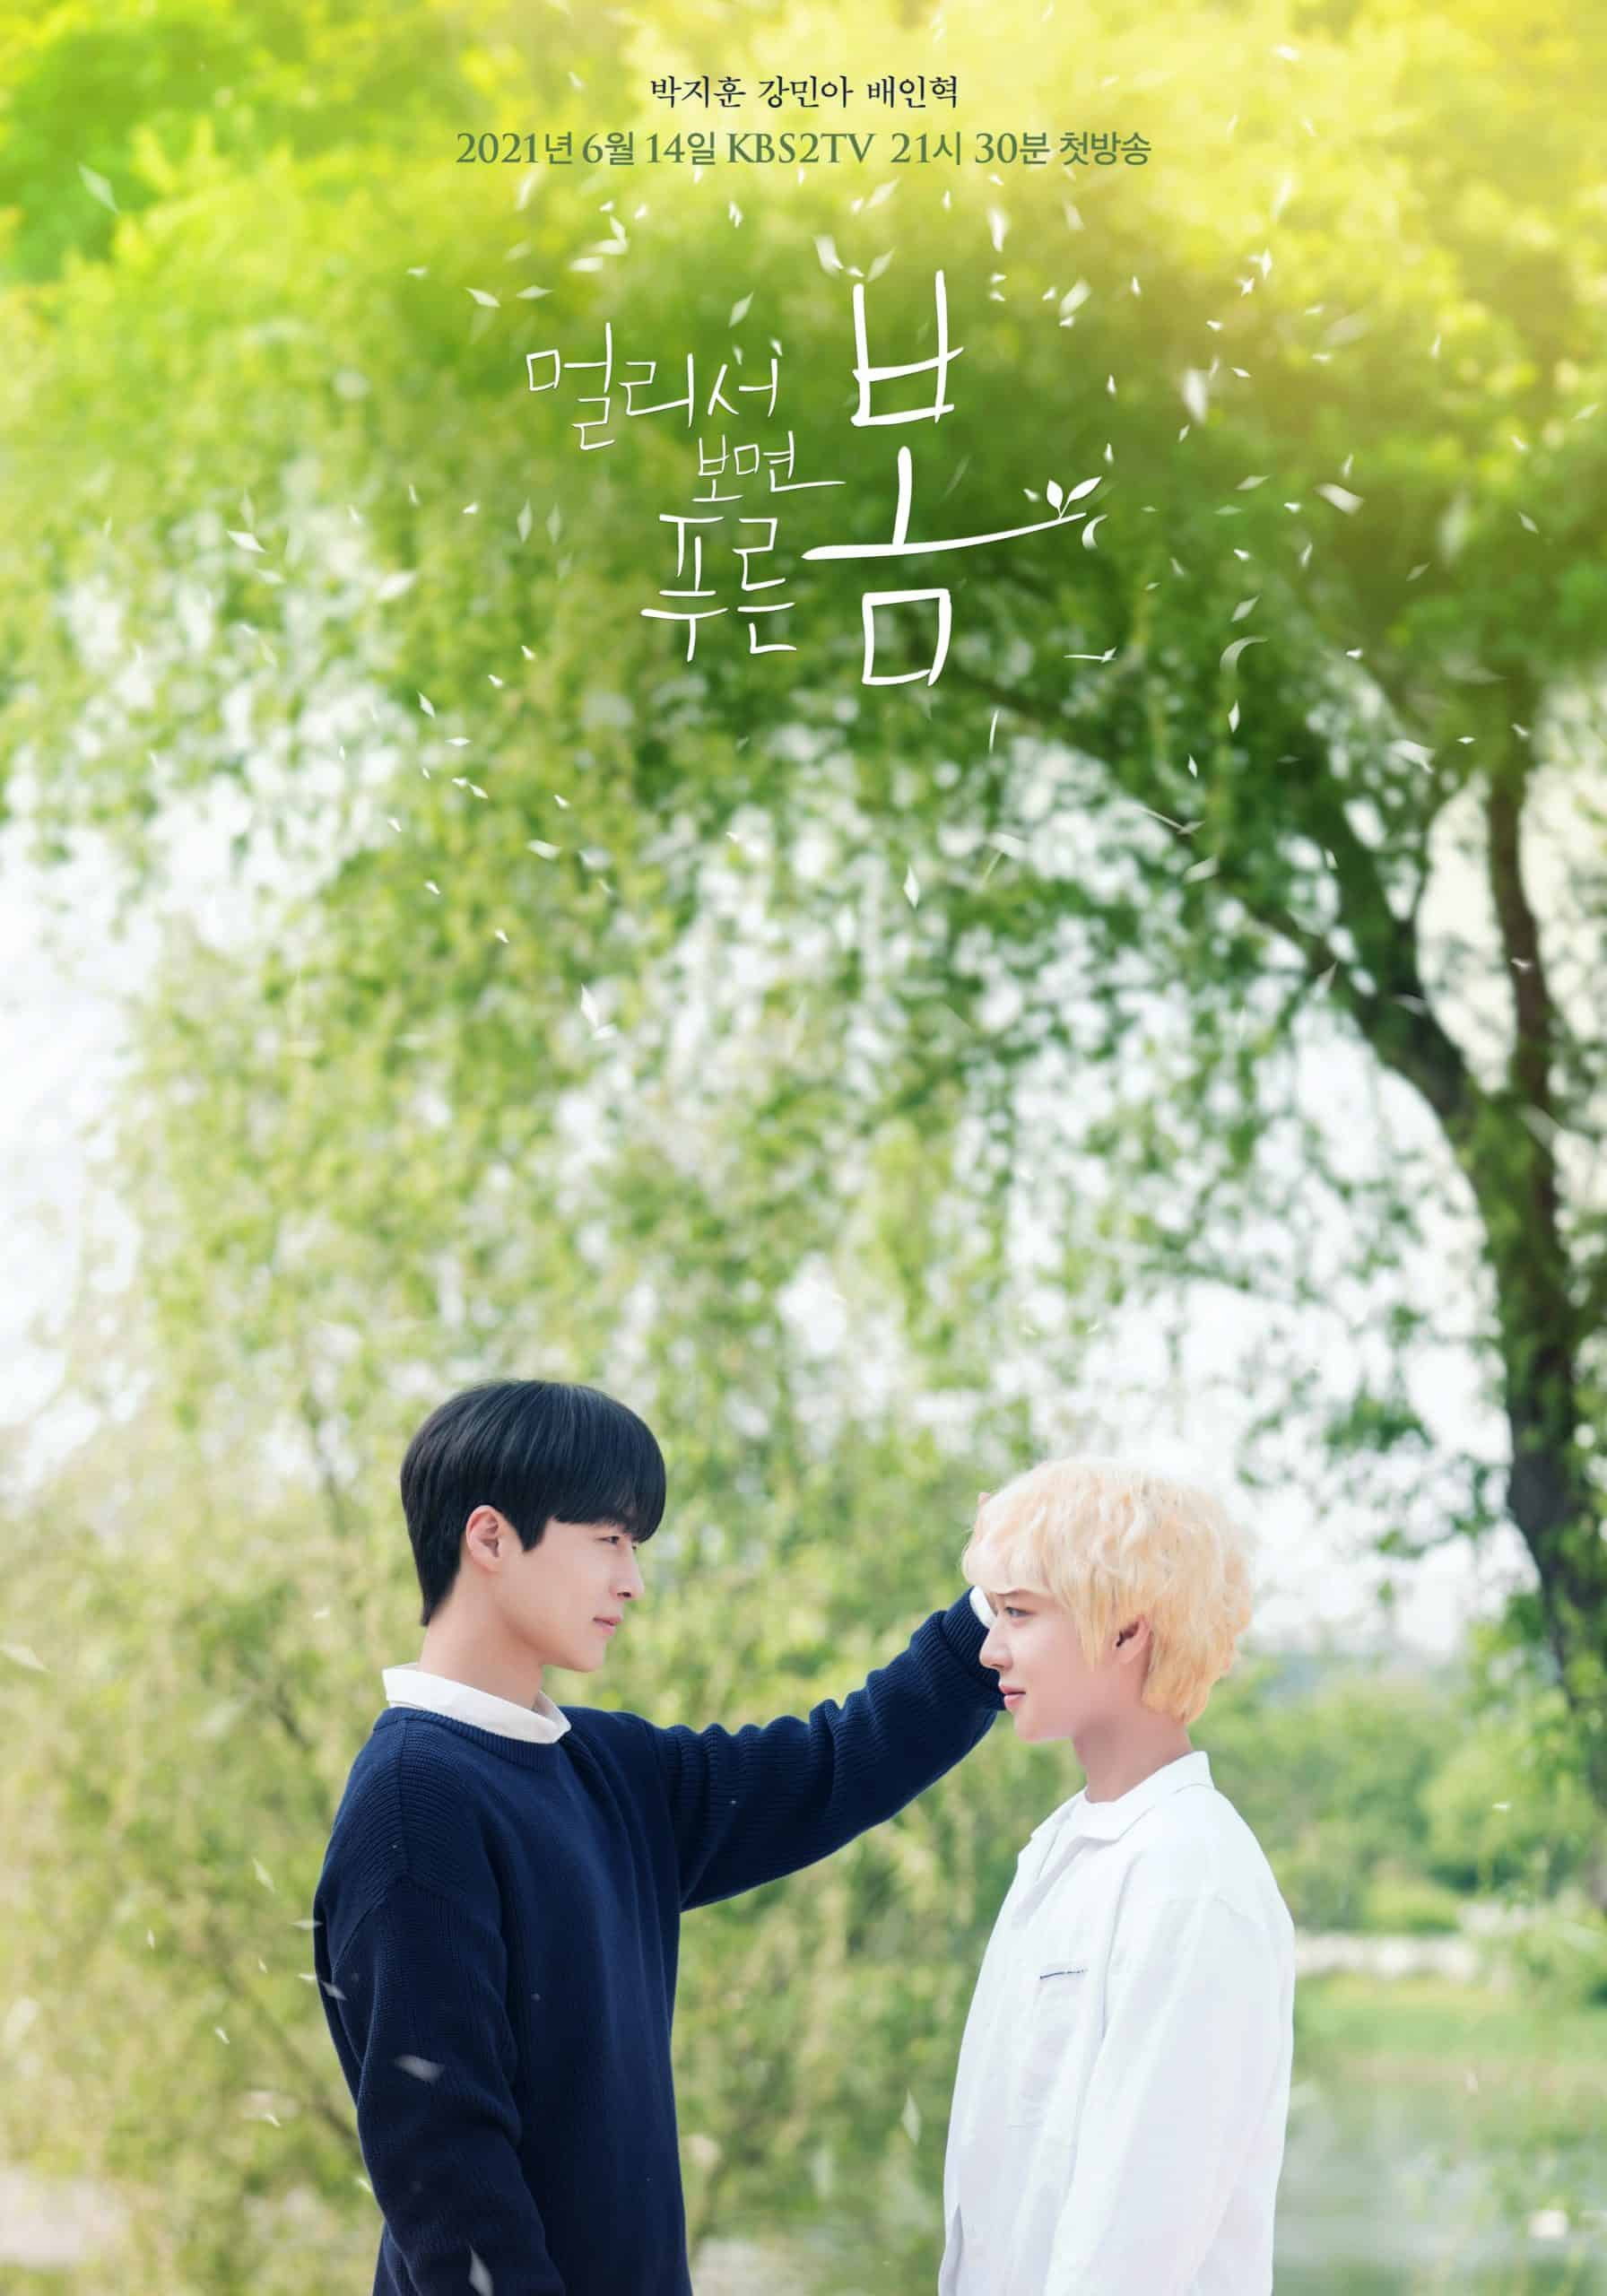 At a Distance, Spring is Green ซับไทย EP1-EP5